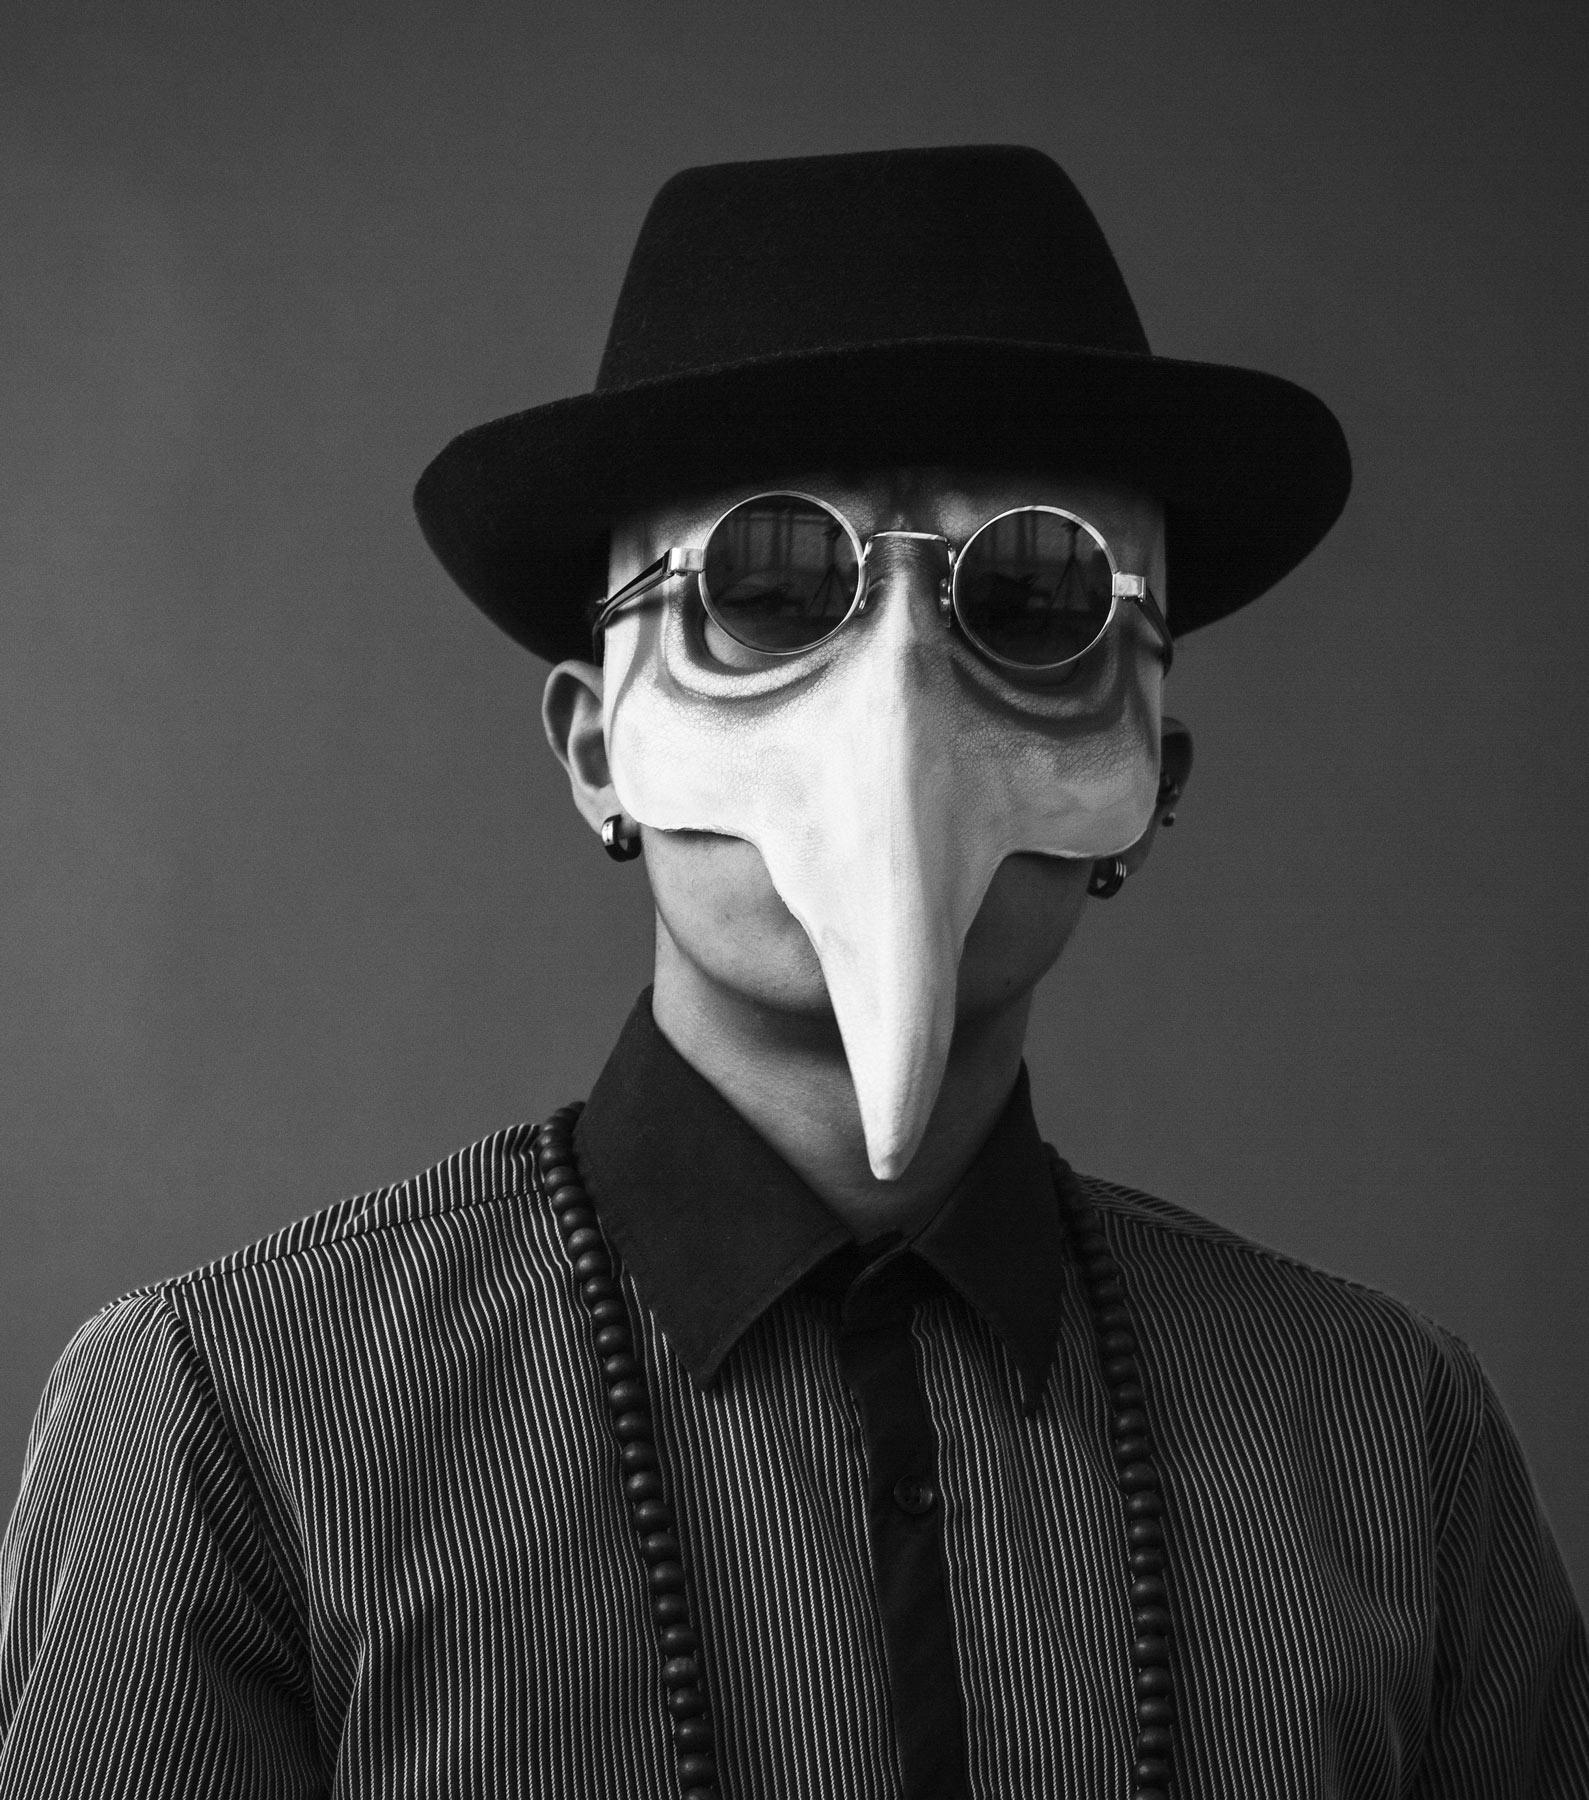 Cold World - Plague Doctor